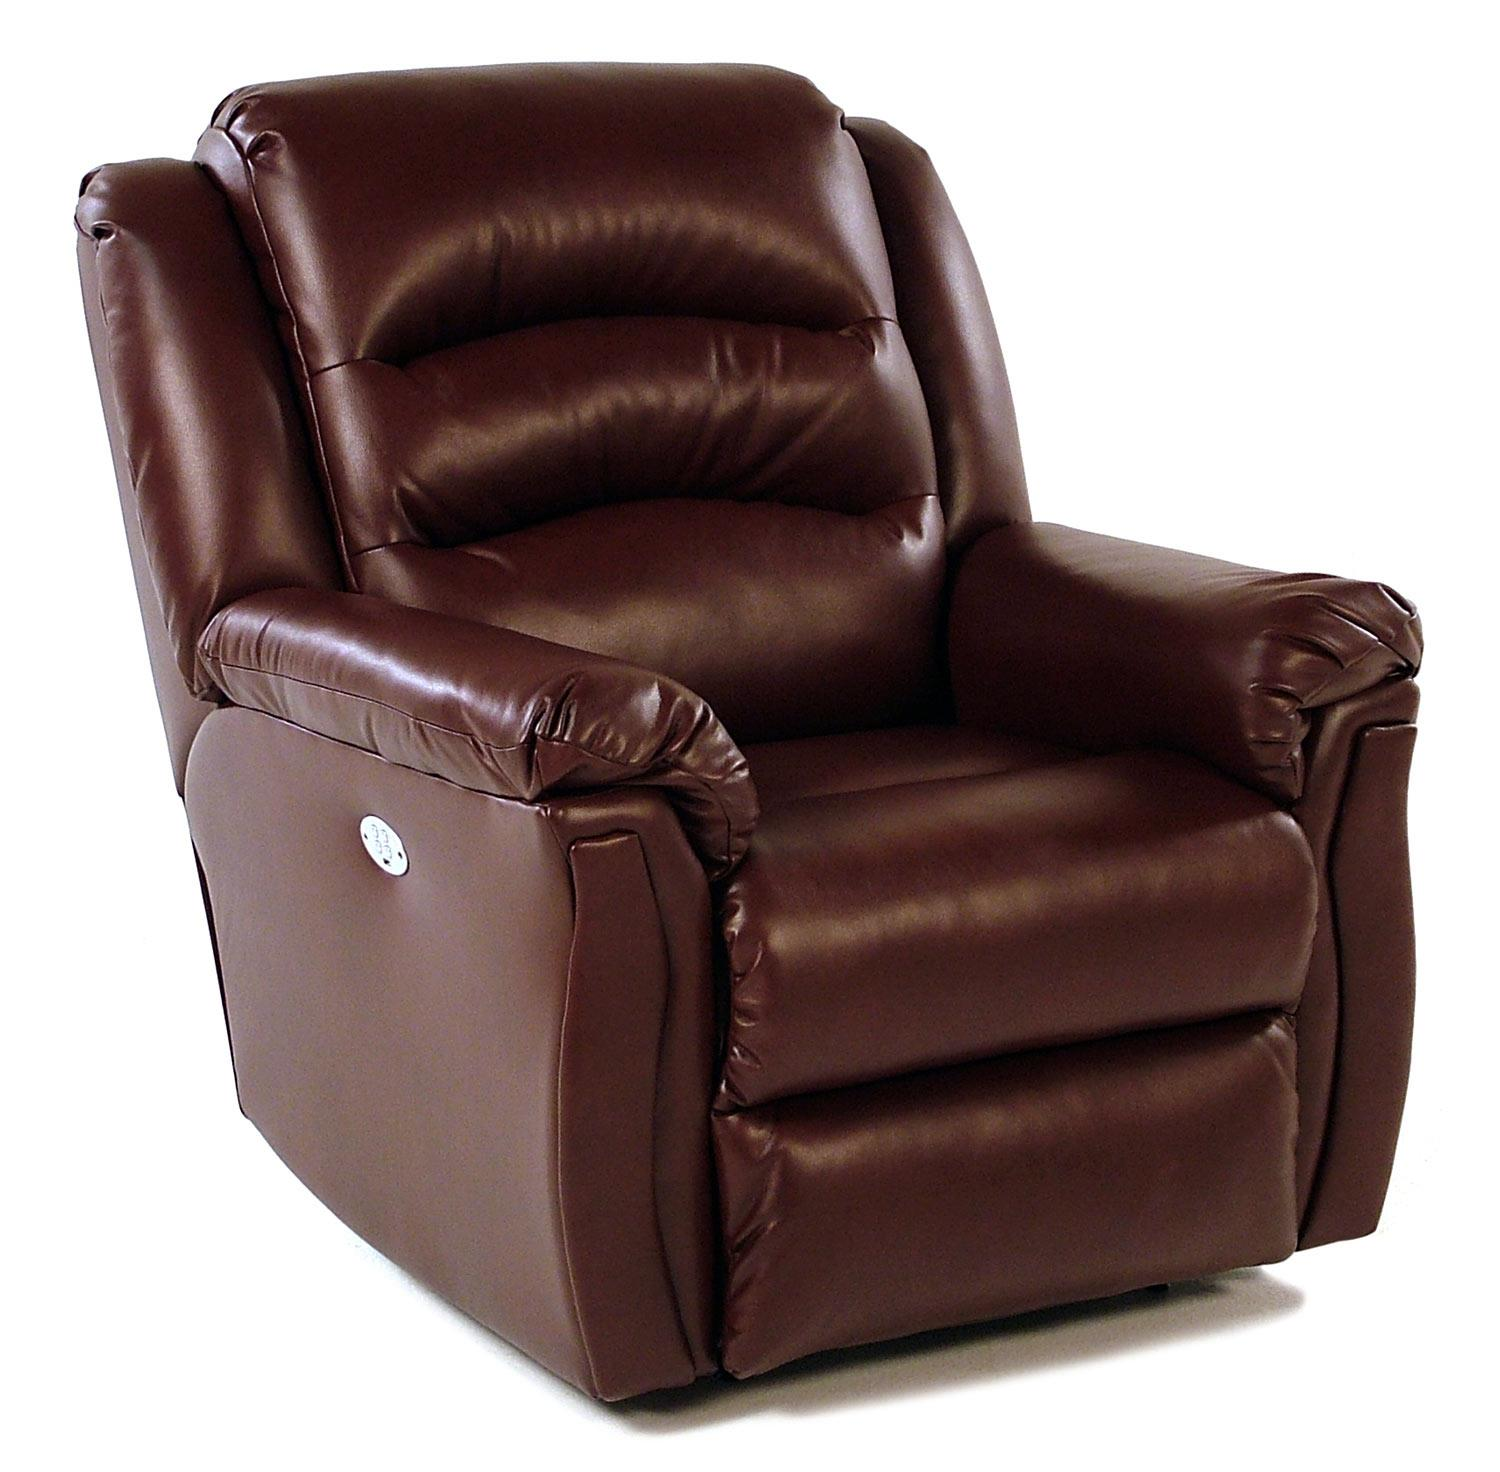 Max Power Wall Recliner